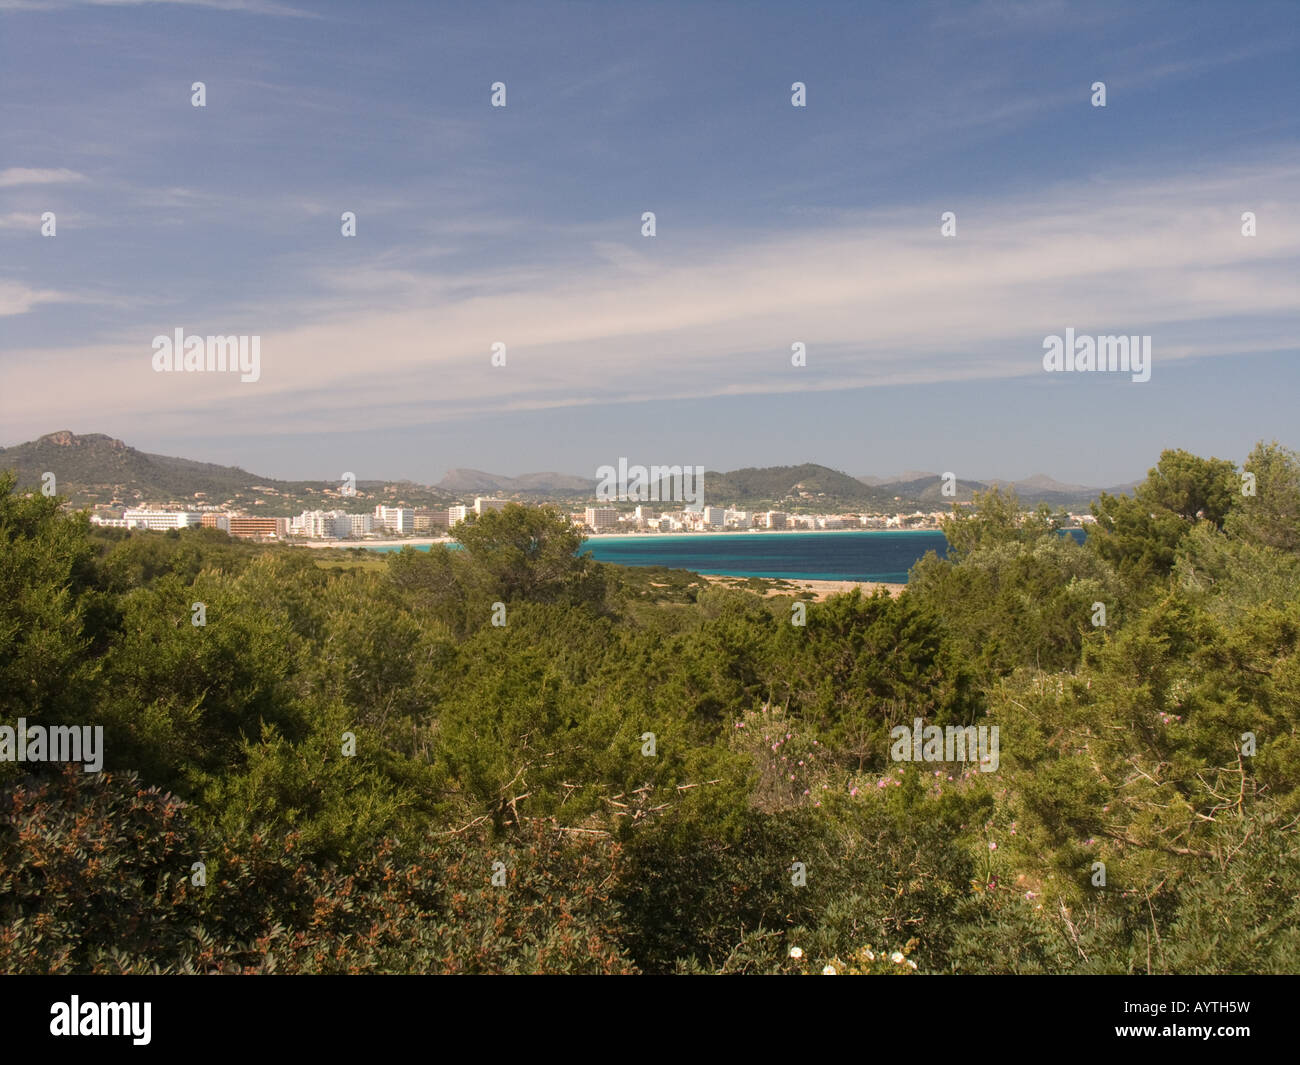 View of Cala Millor with trees in foreground - Stock Image